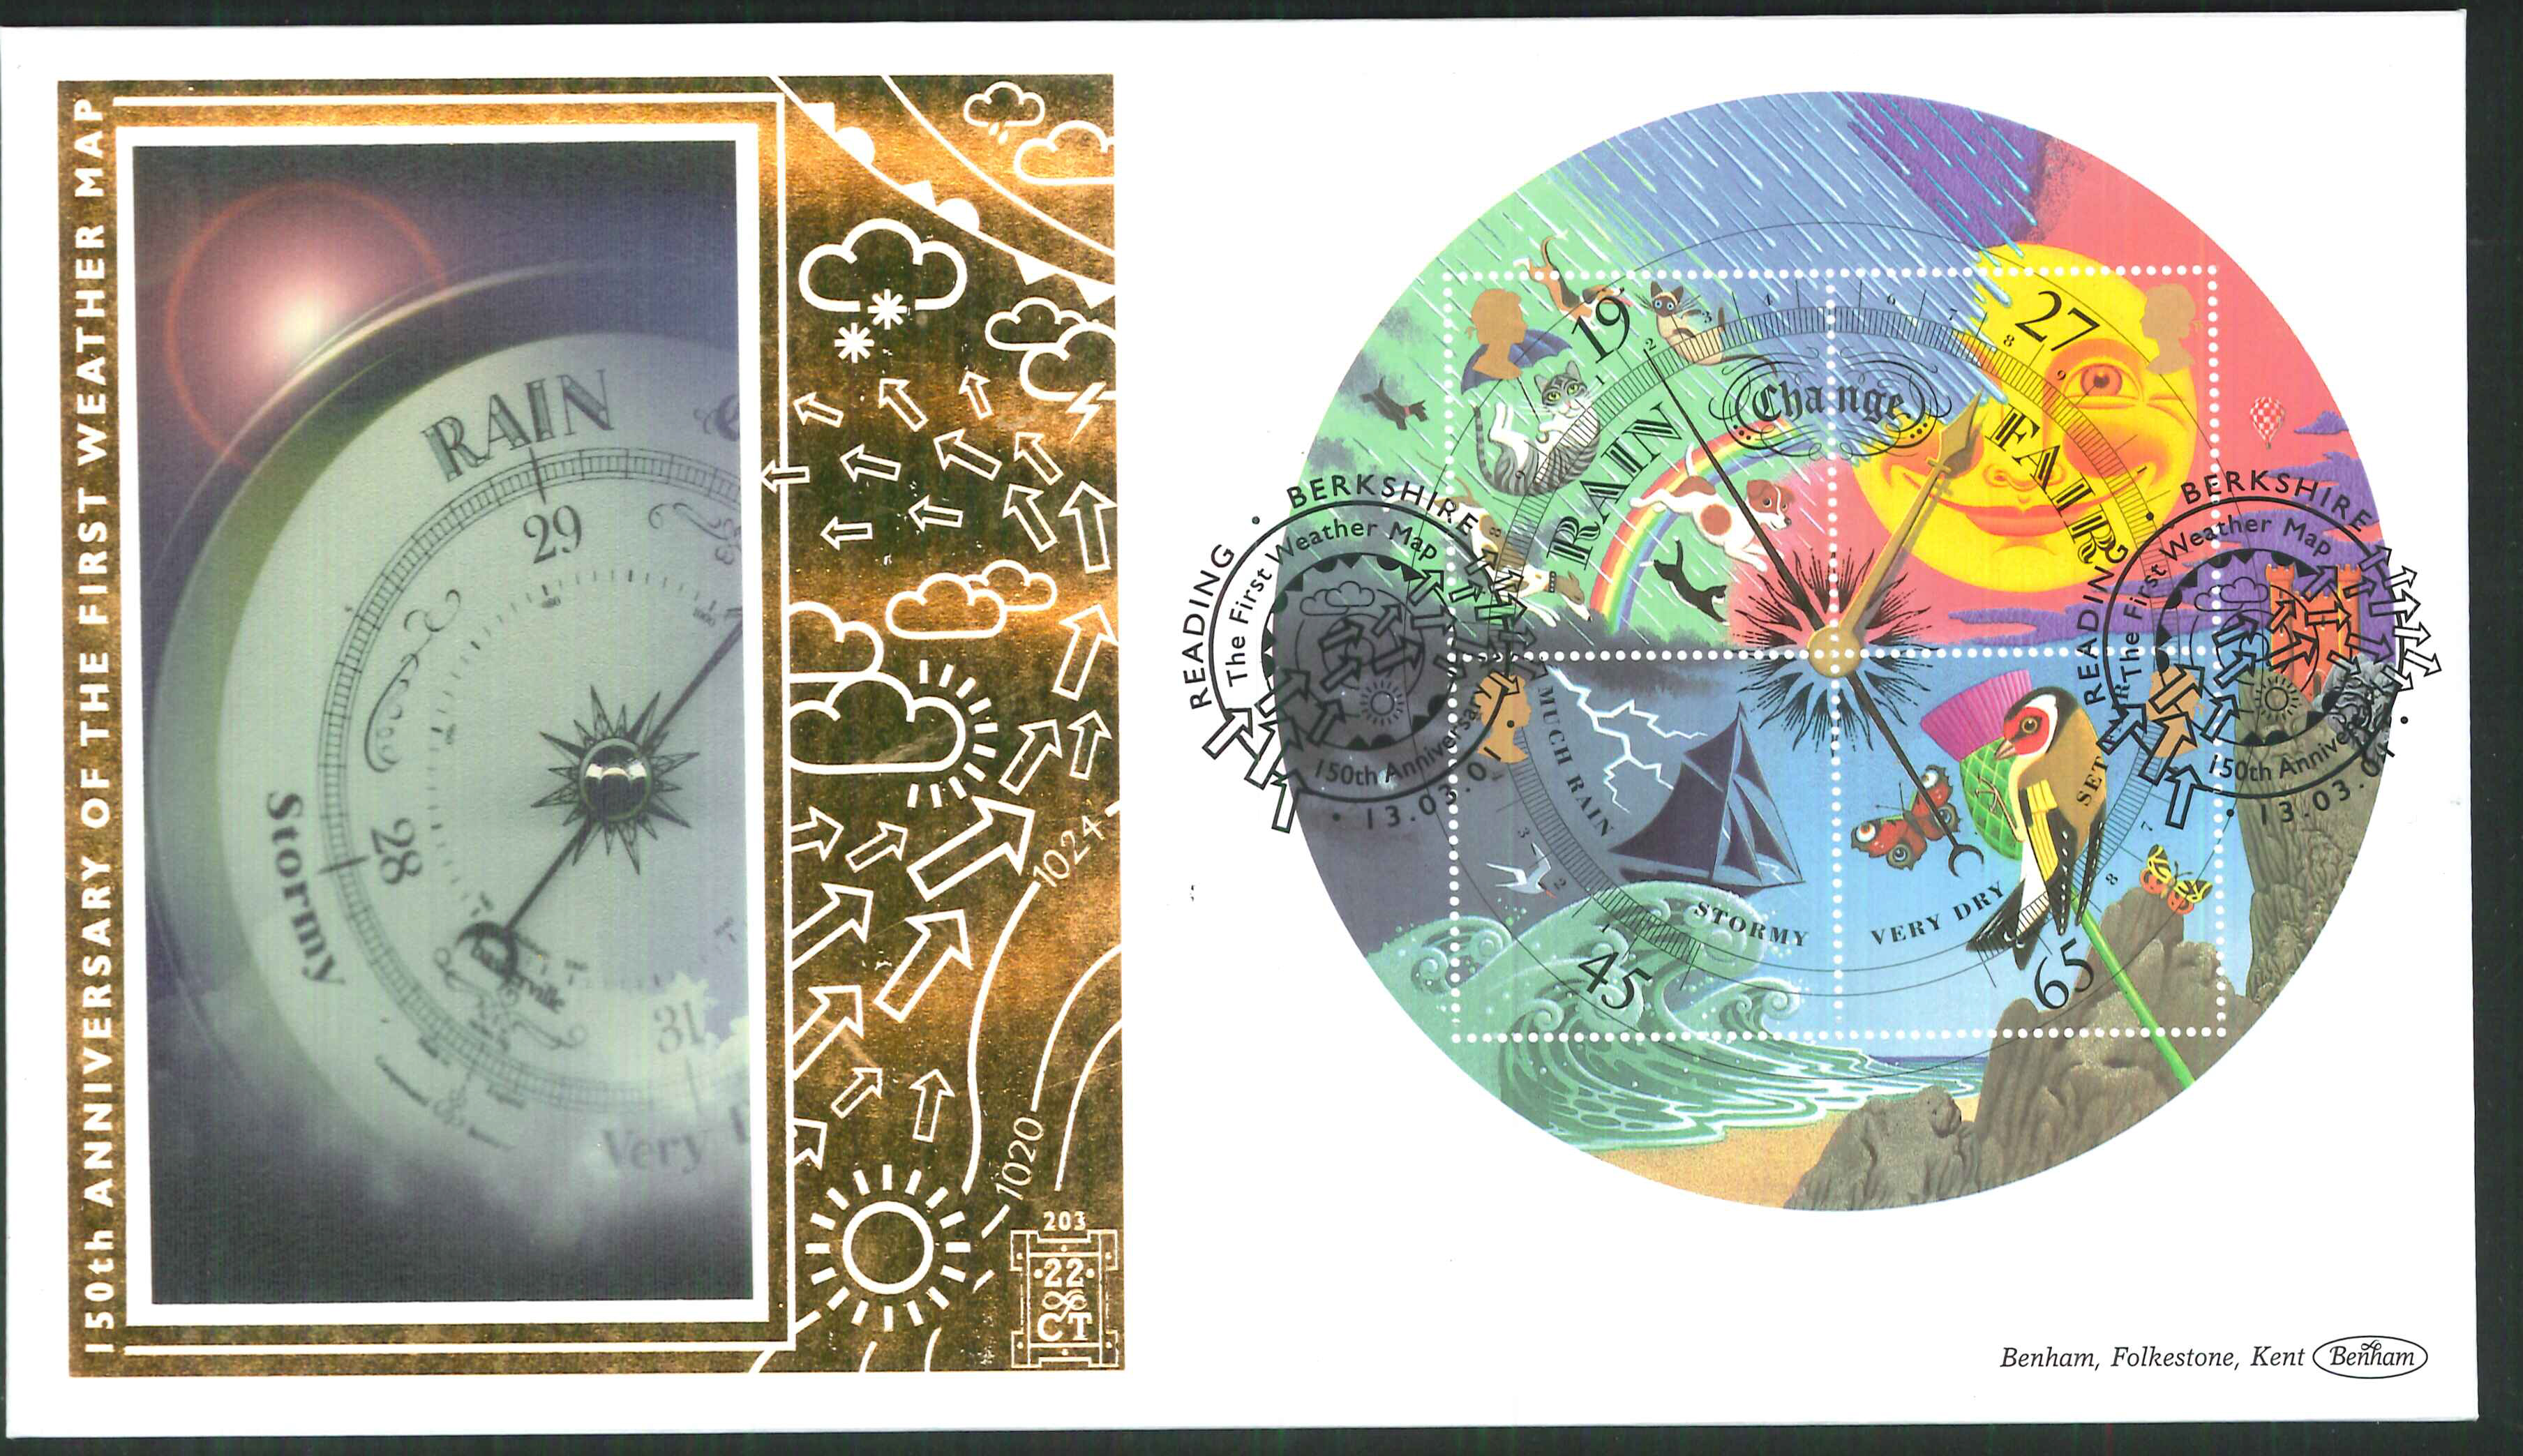 2001 -Weather M/S FDC Benham 22ct Gold 500 Reading Postmark